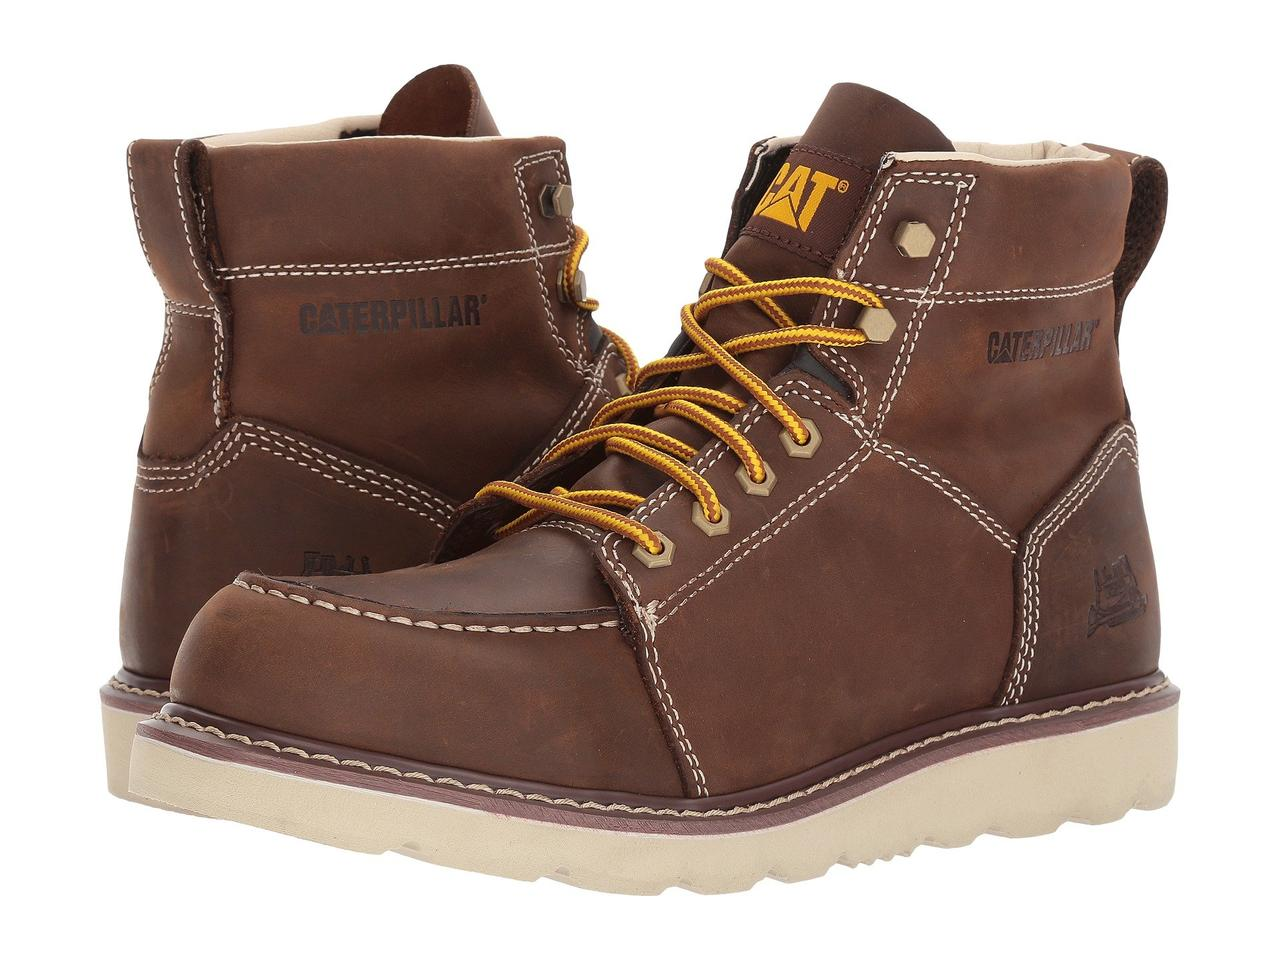 Ботинки/Сапоги (Оригинал) Caterpillar Tradesman Chocolate Brown Nubuck